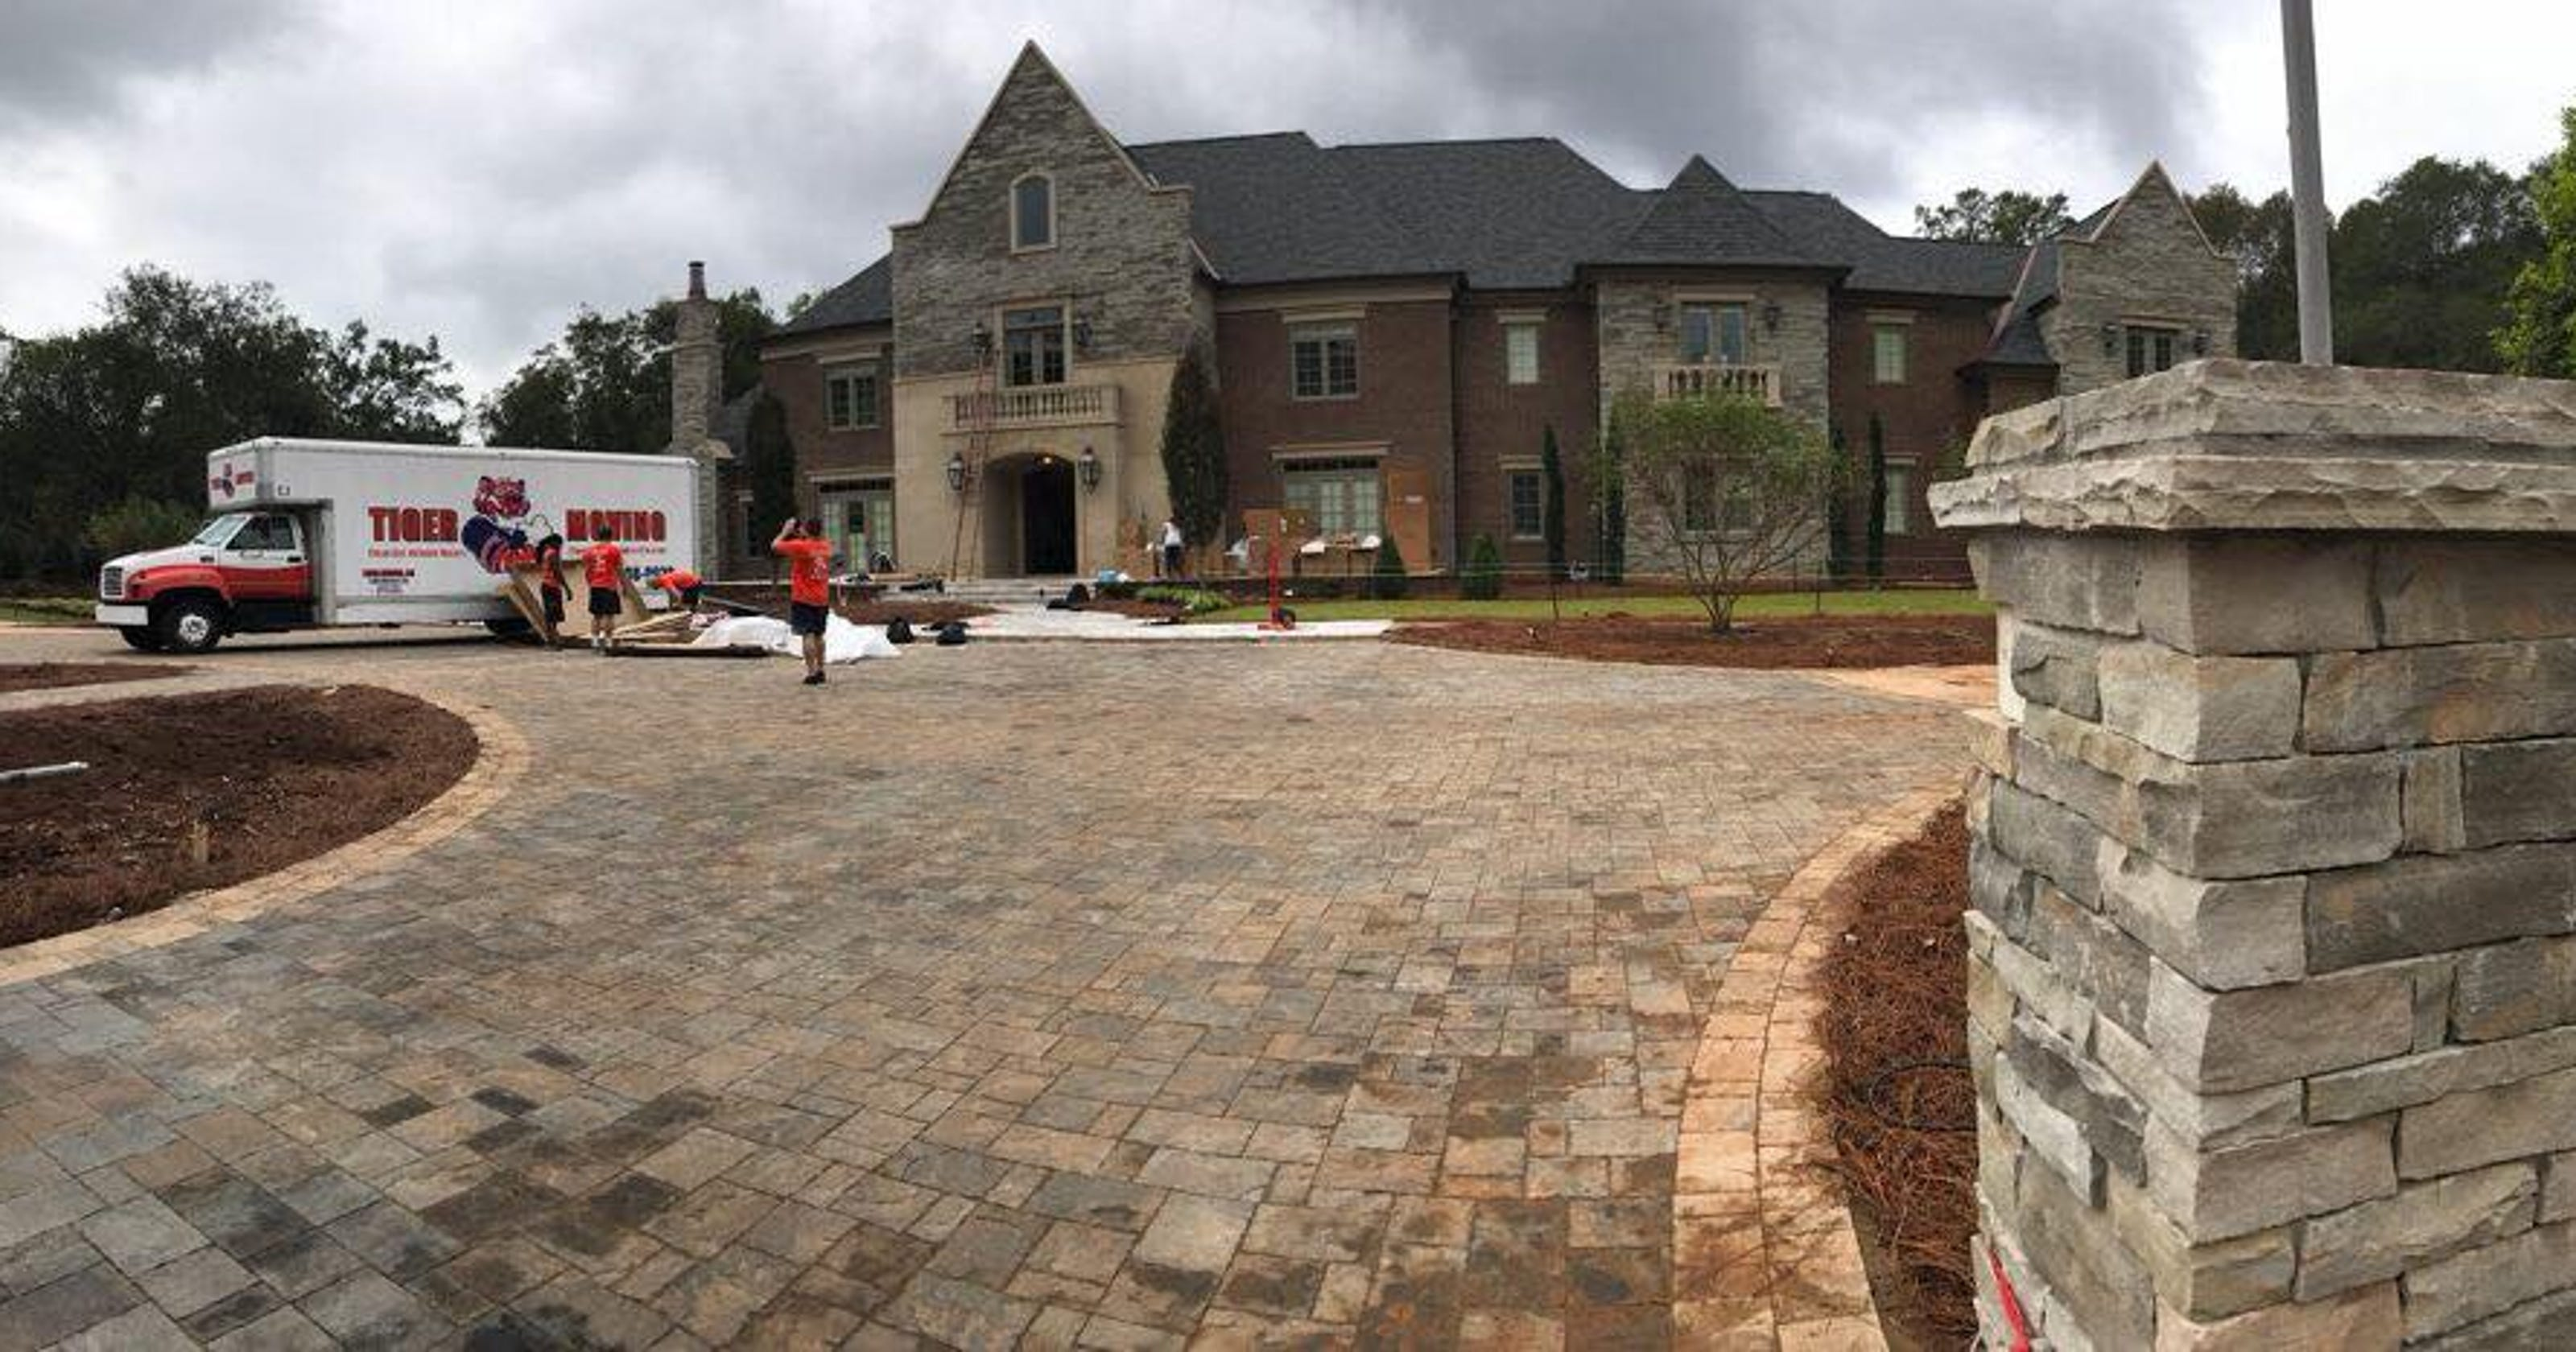 Take a look at Coach Dabo Swinney's new home